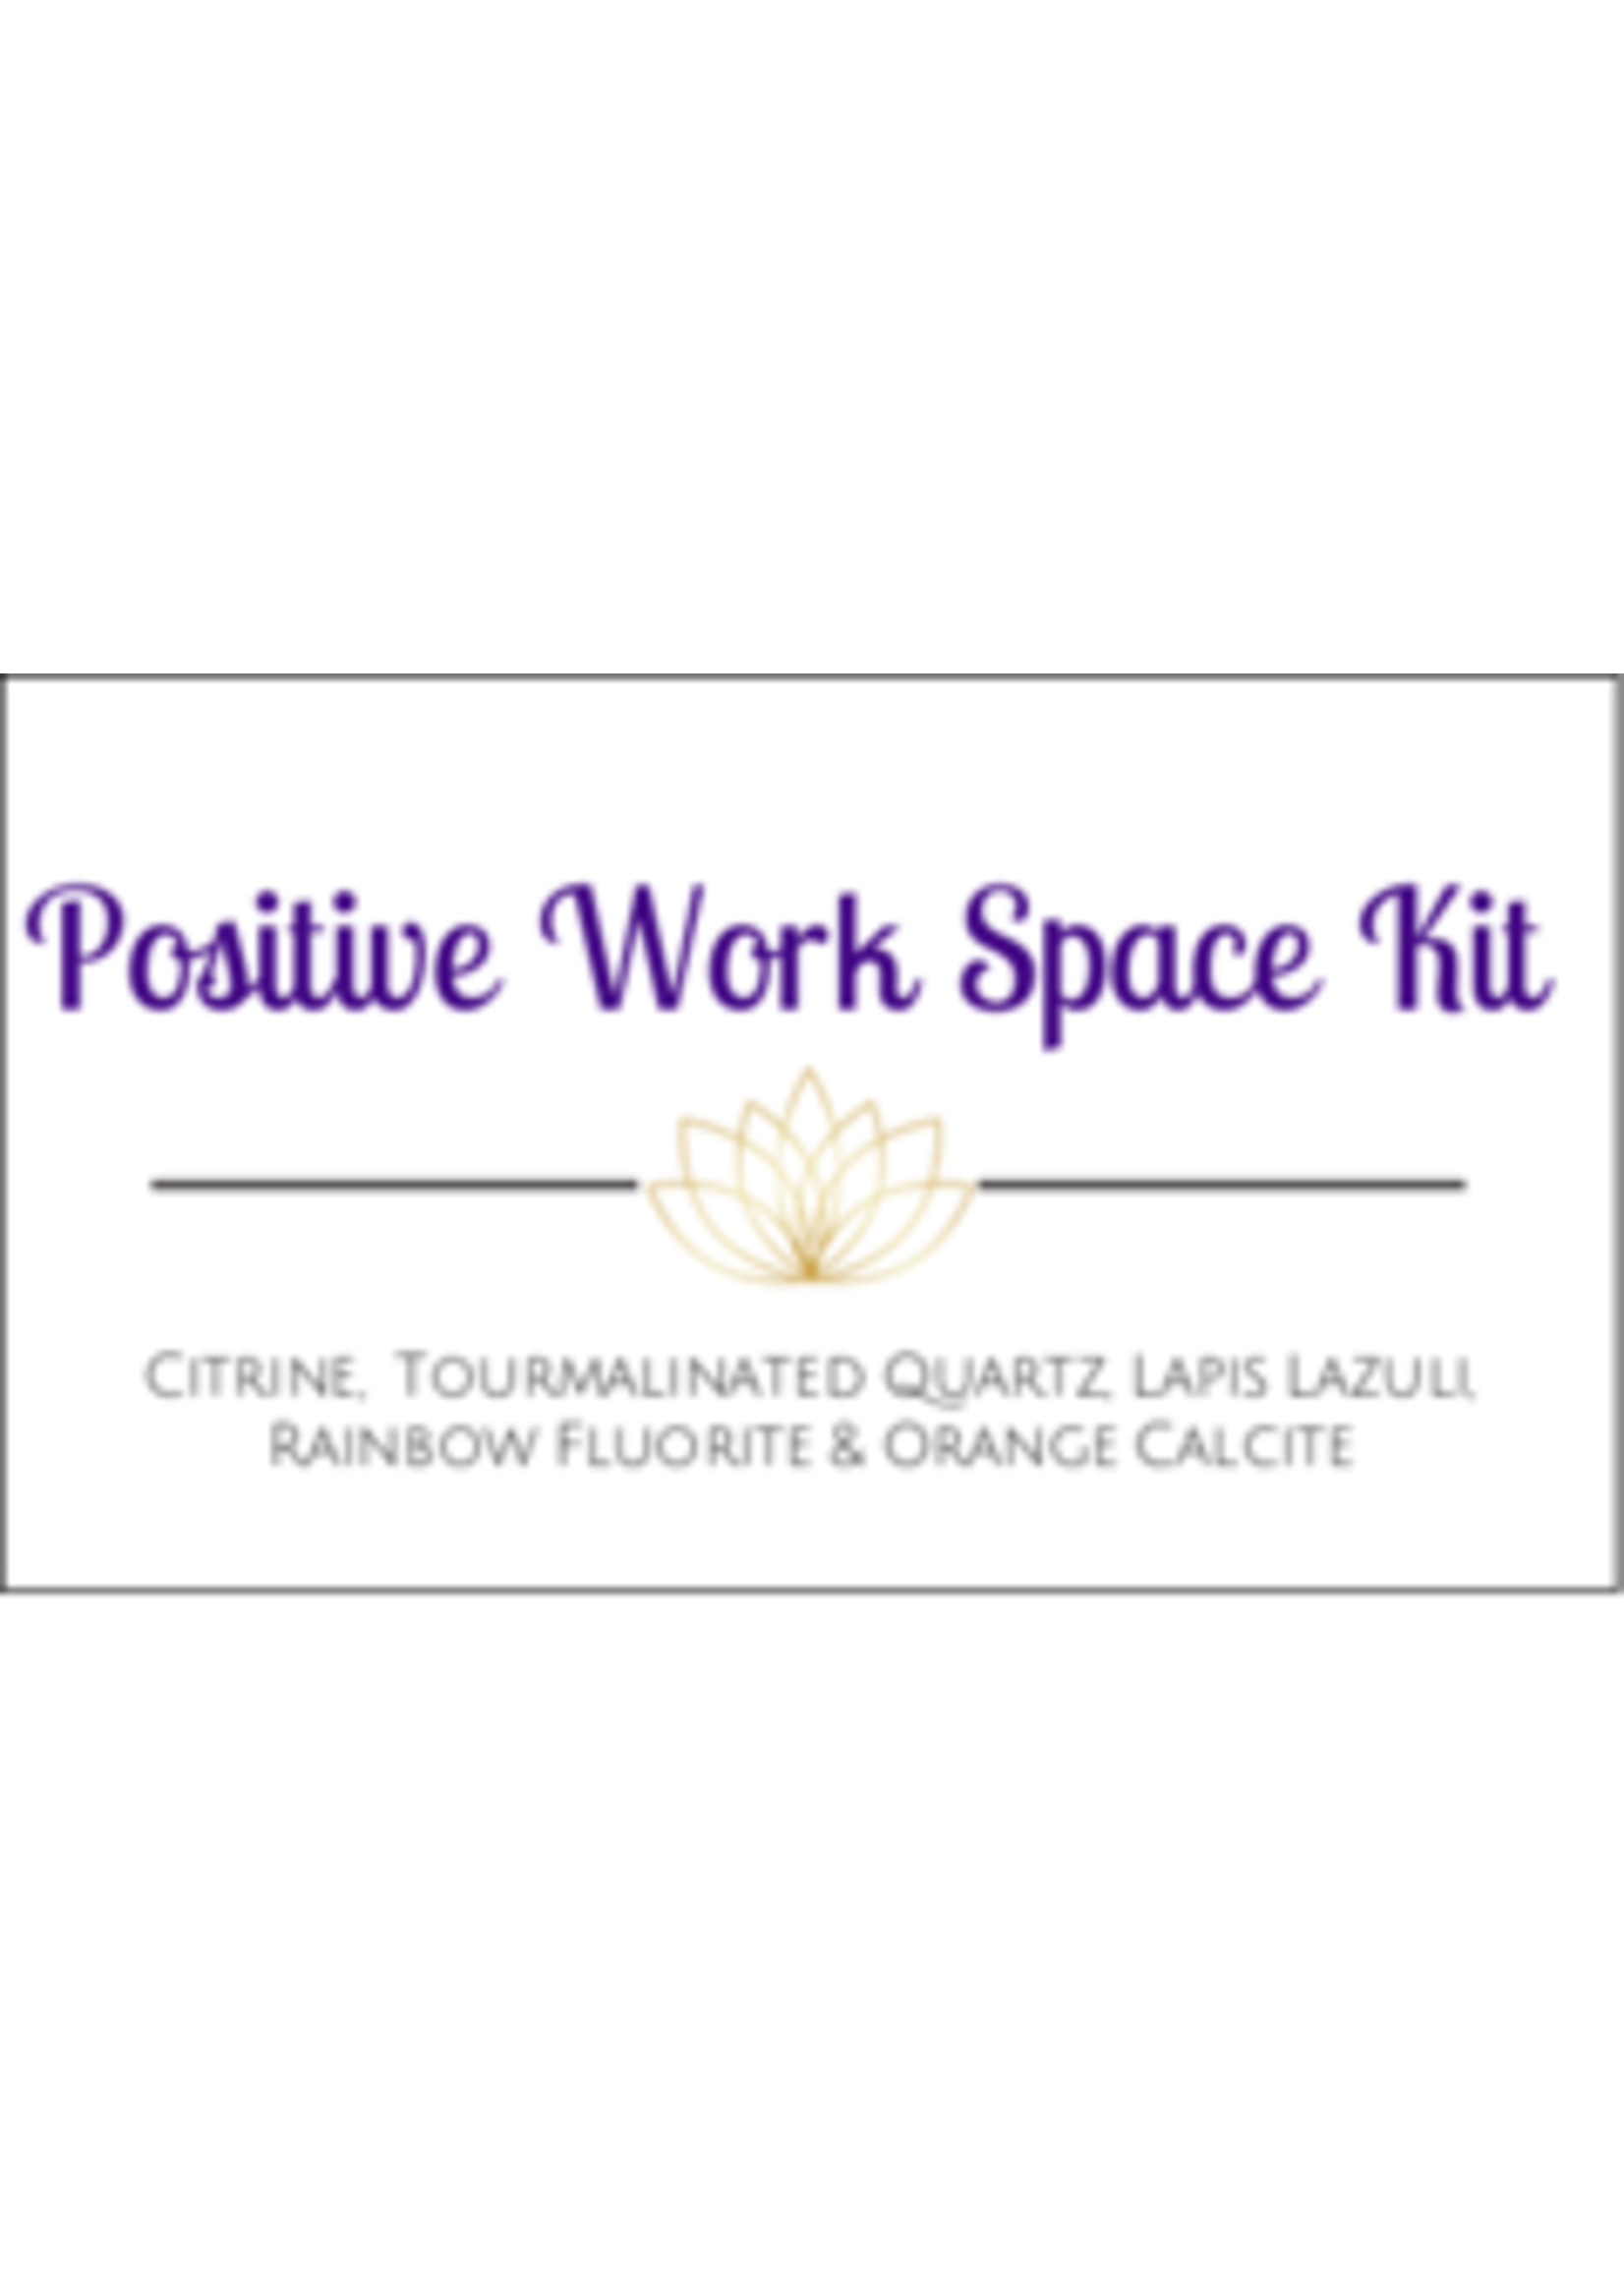 Positive Work Space Crystal Kit Cards - Box of 100